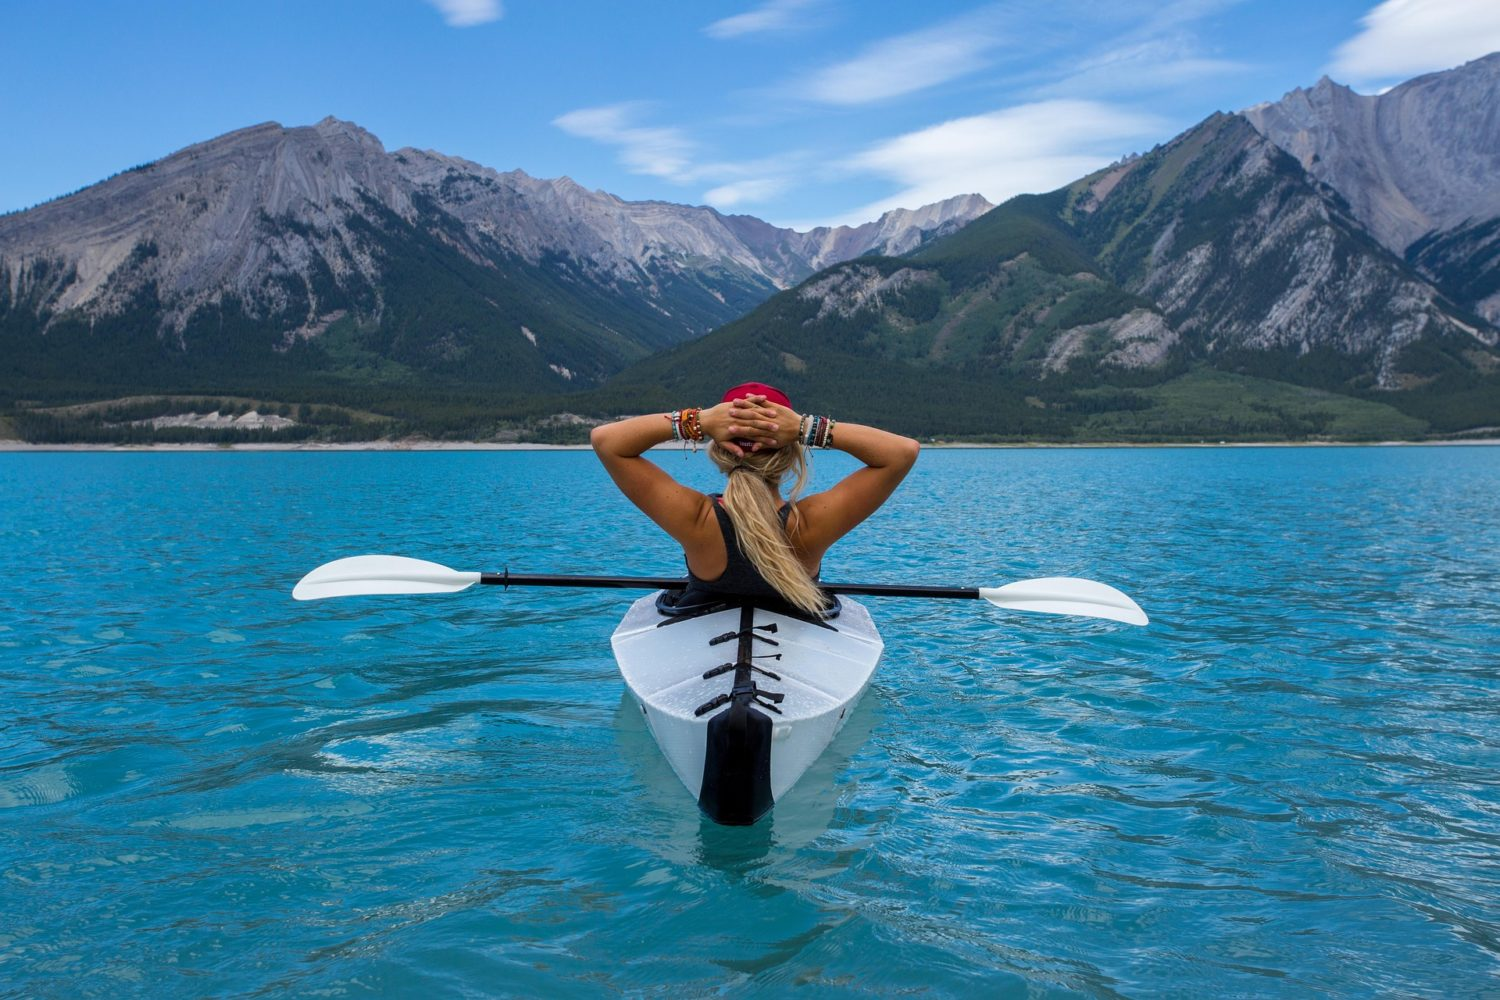 Get your paddle on in sparkling waters!